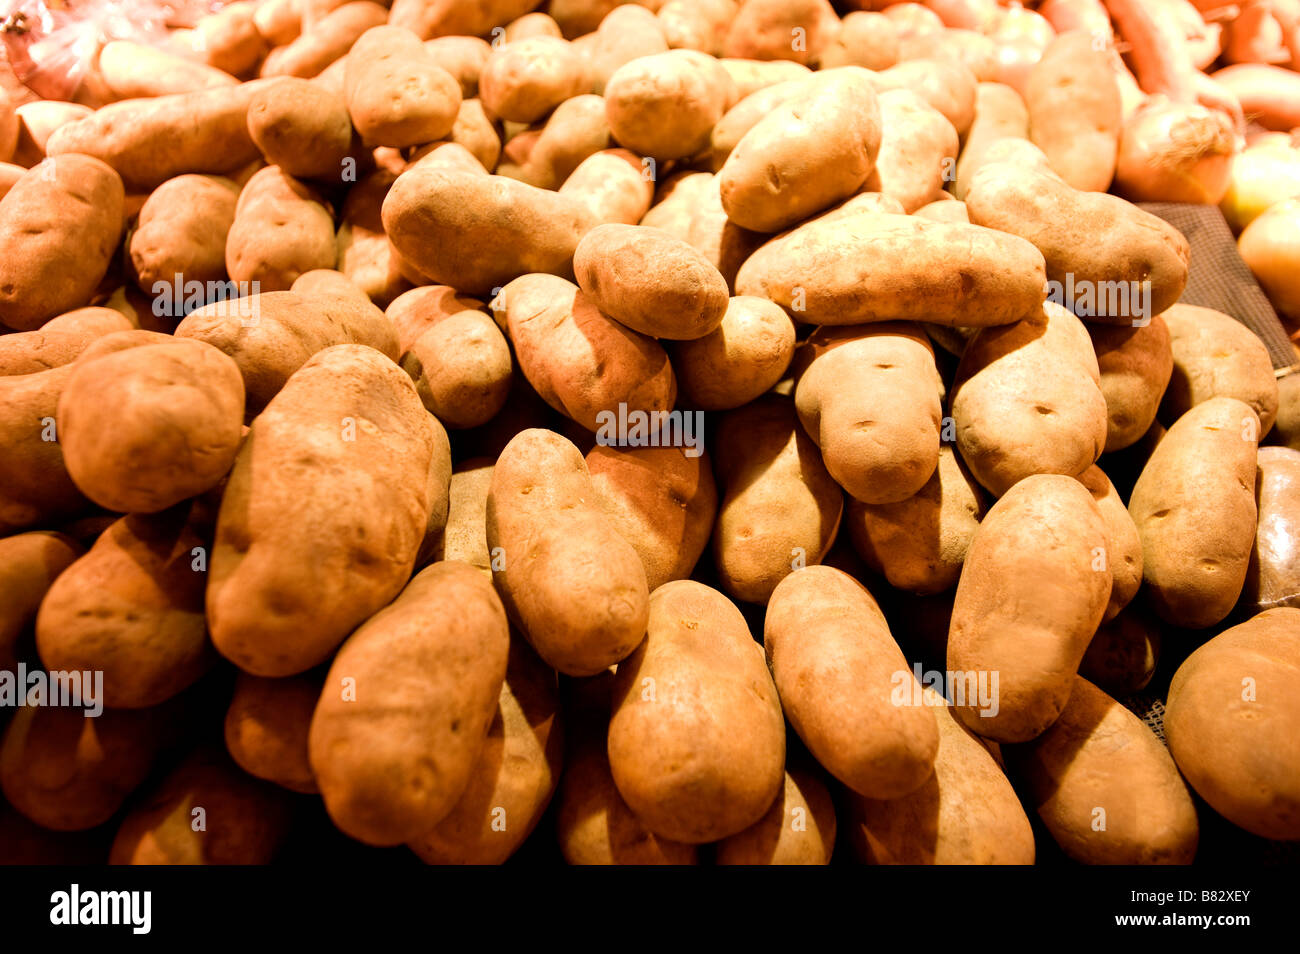 In the produce section of a supermarket russet potatoes await their destiny - Stock Image